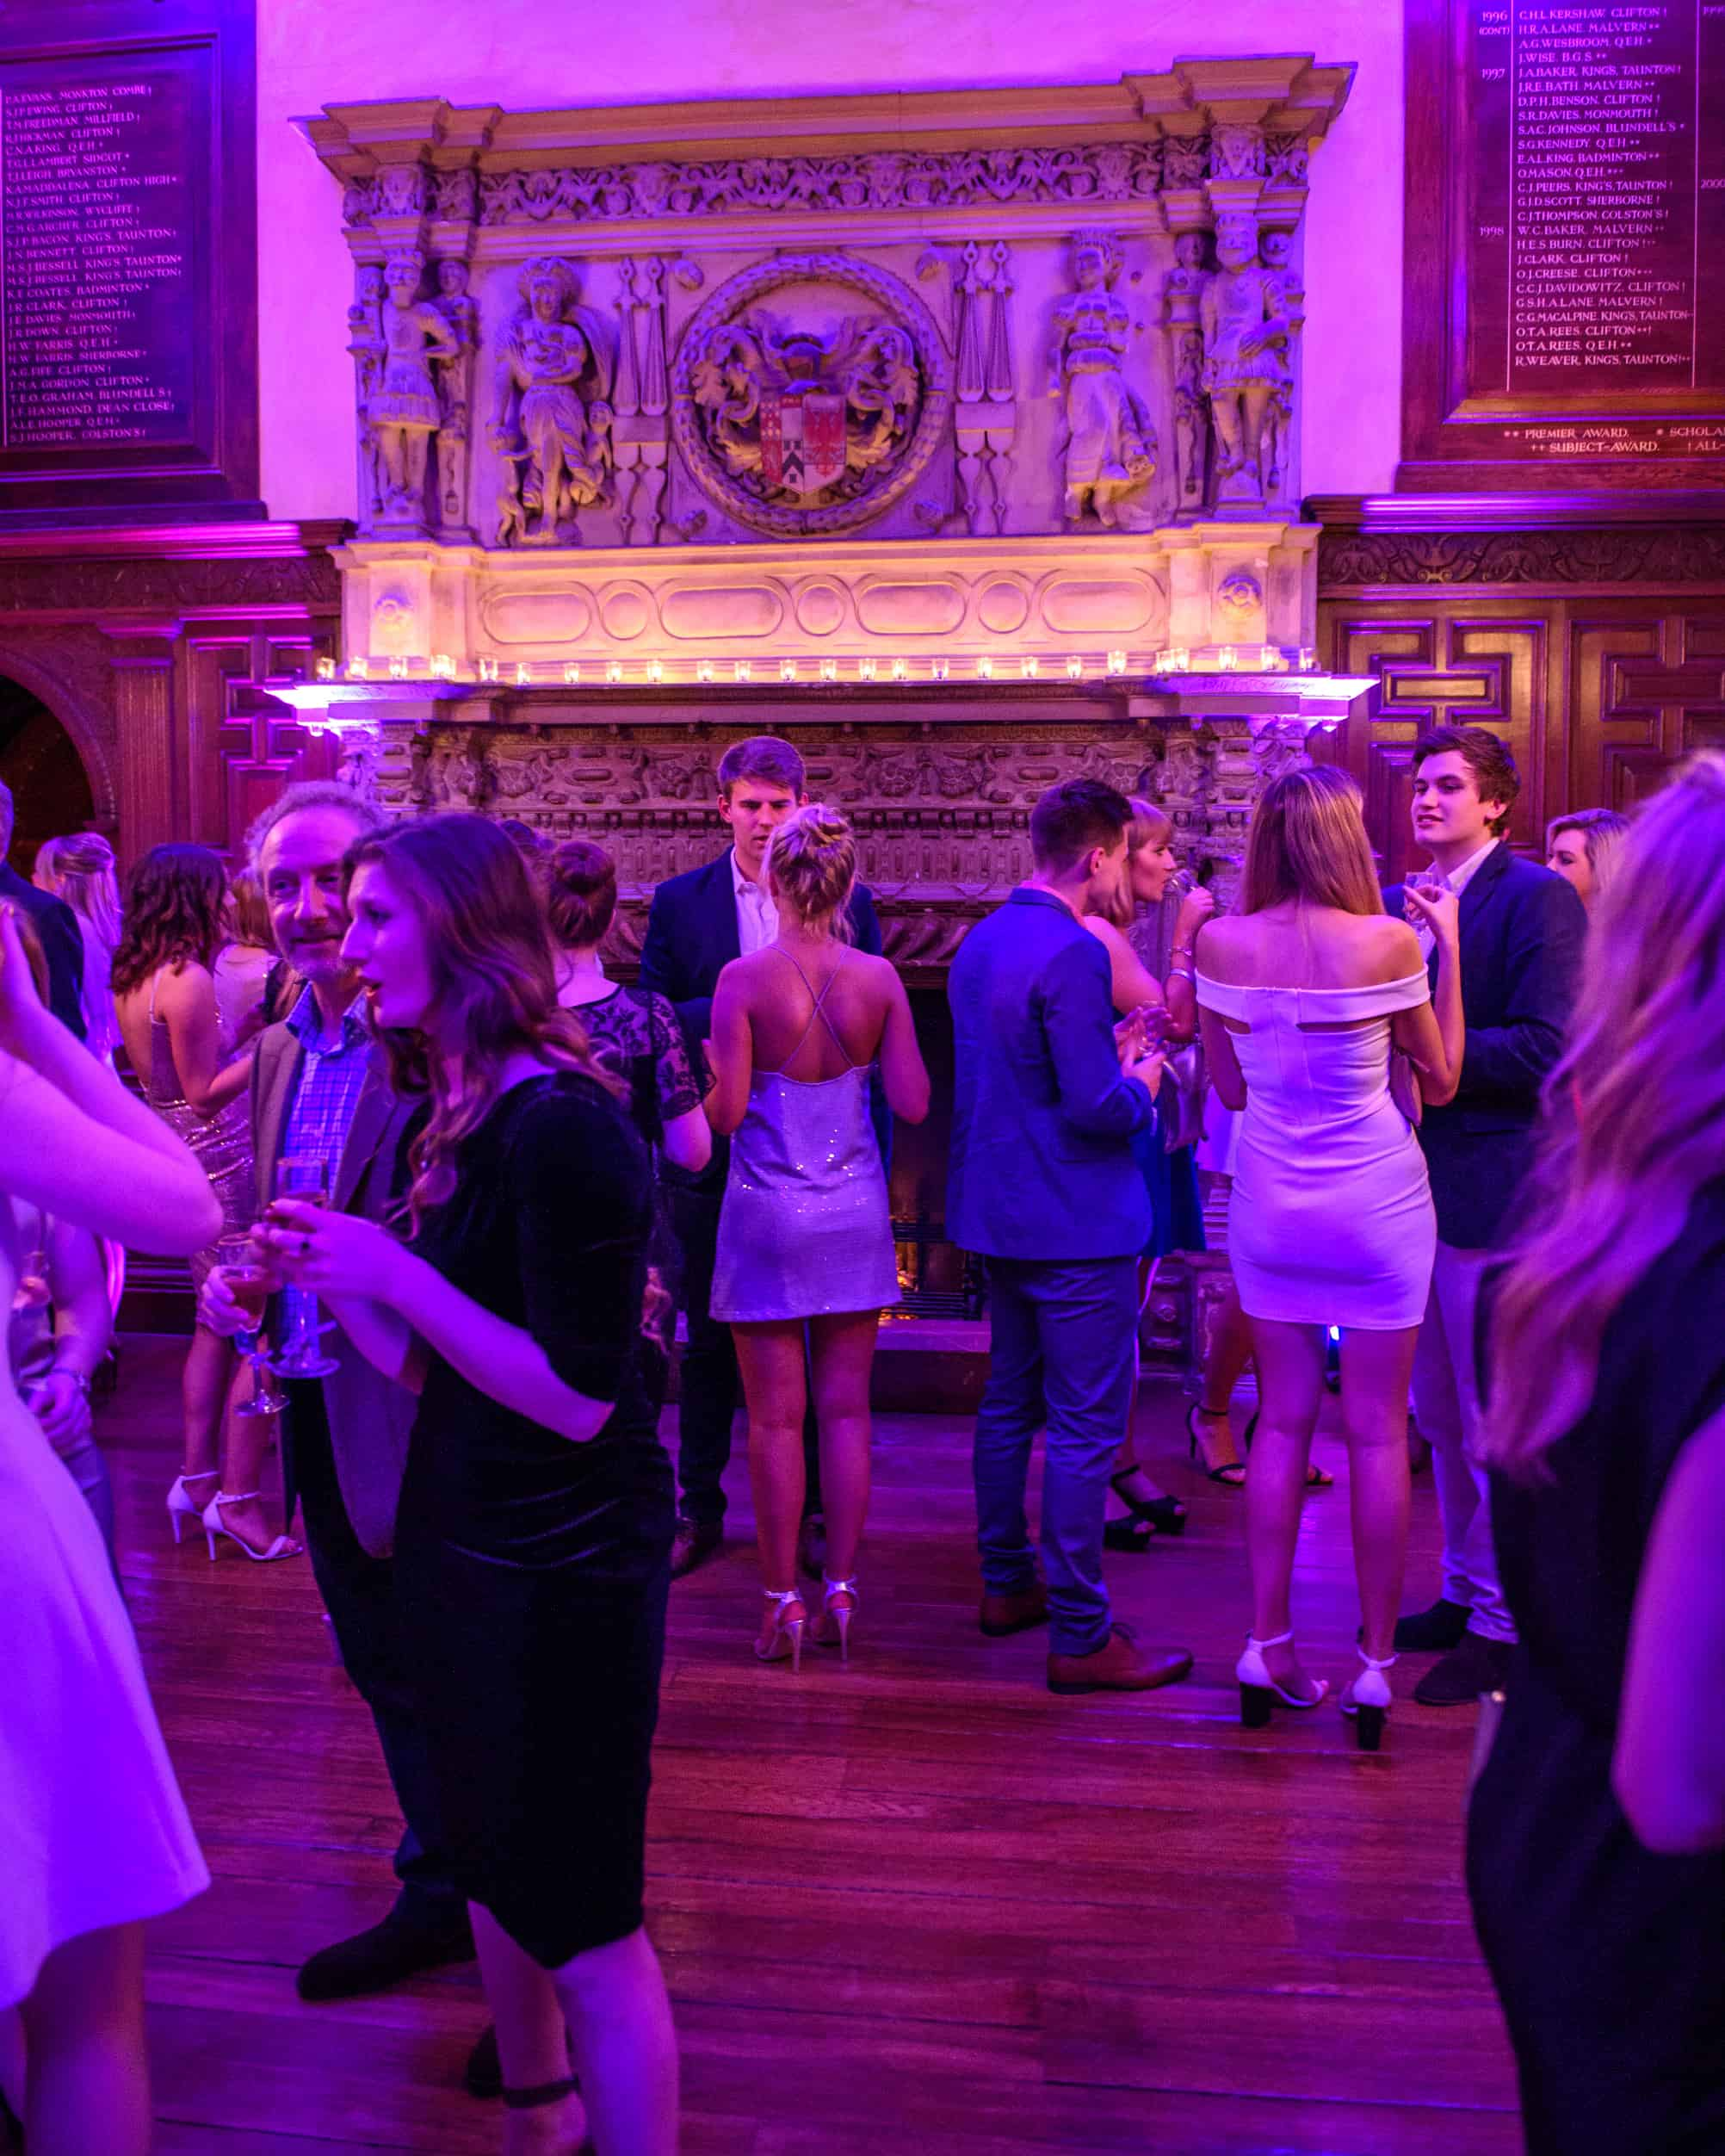 Party inside Great Hall